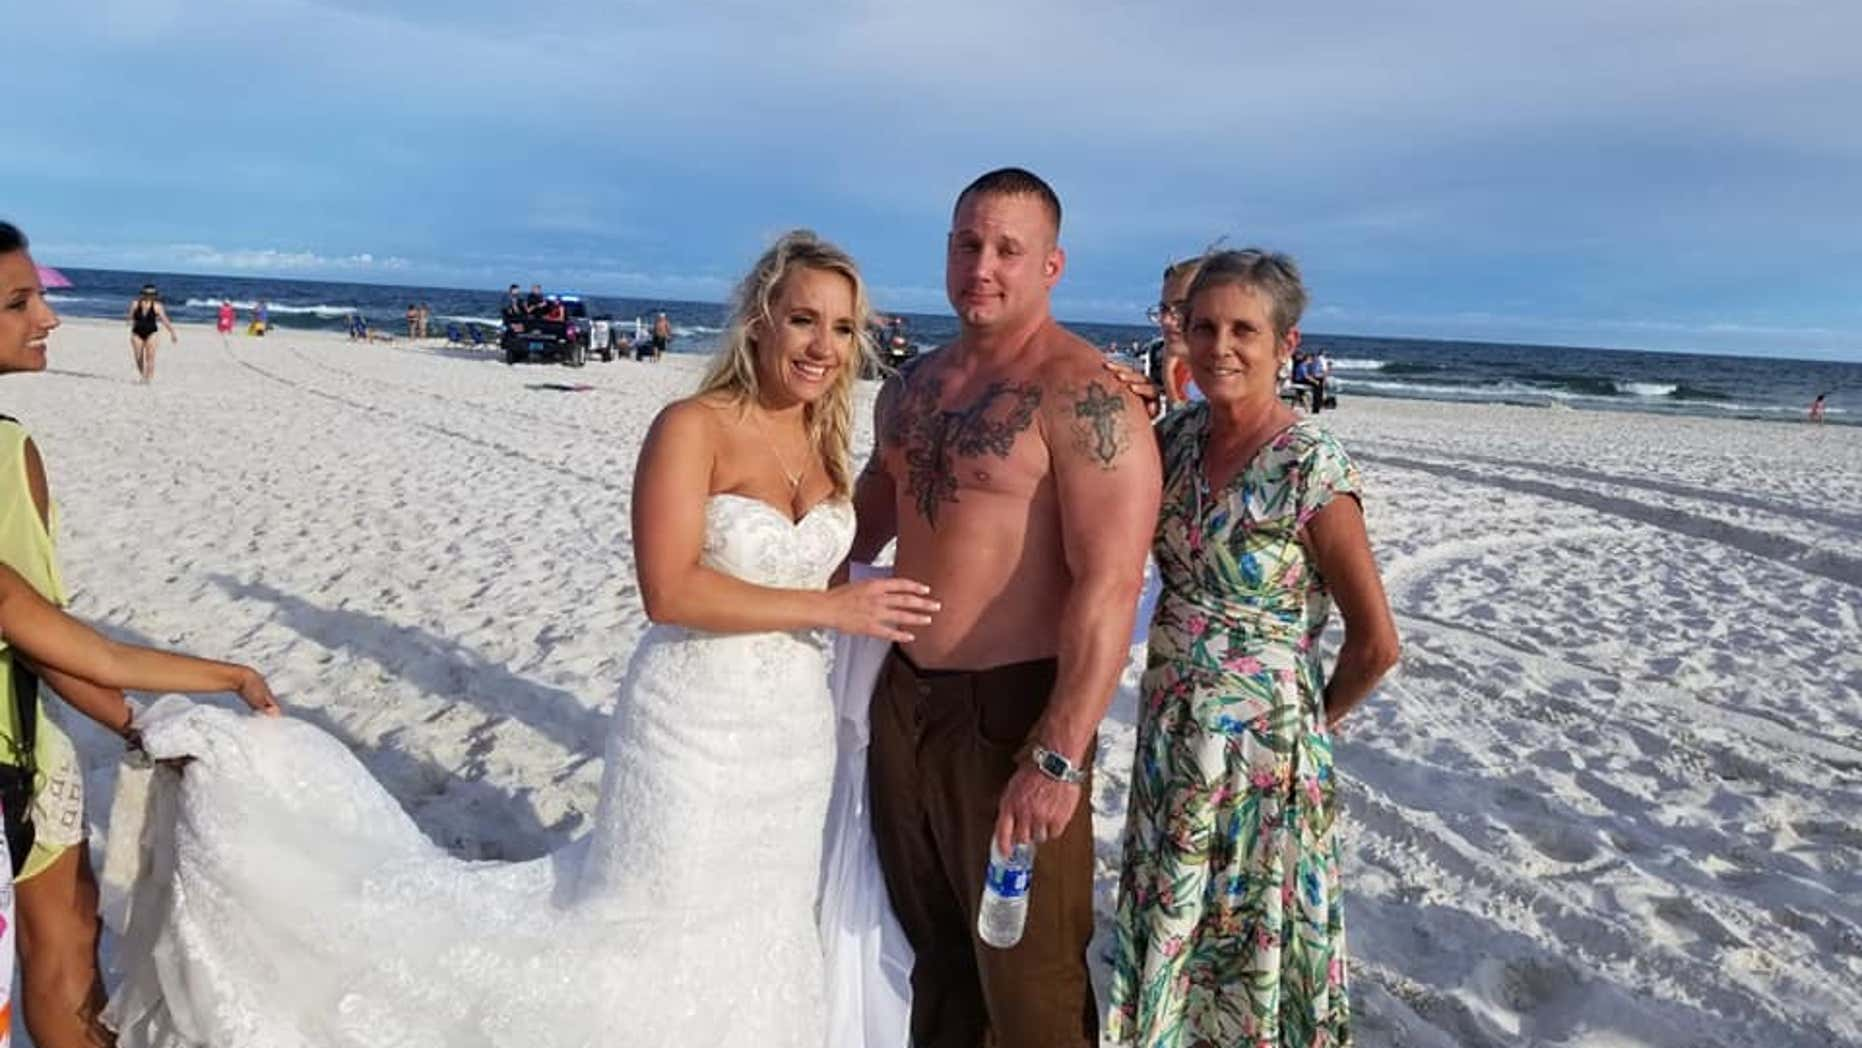 Moments after he got married, Coast Guard Petty Officer 2nd Class Zac Edwards saved a man from drowning on an Alabama beach.